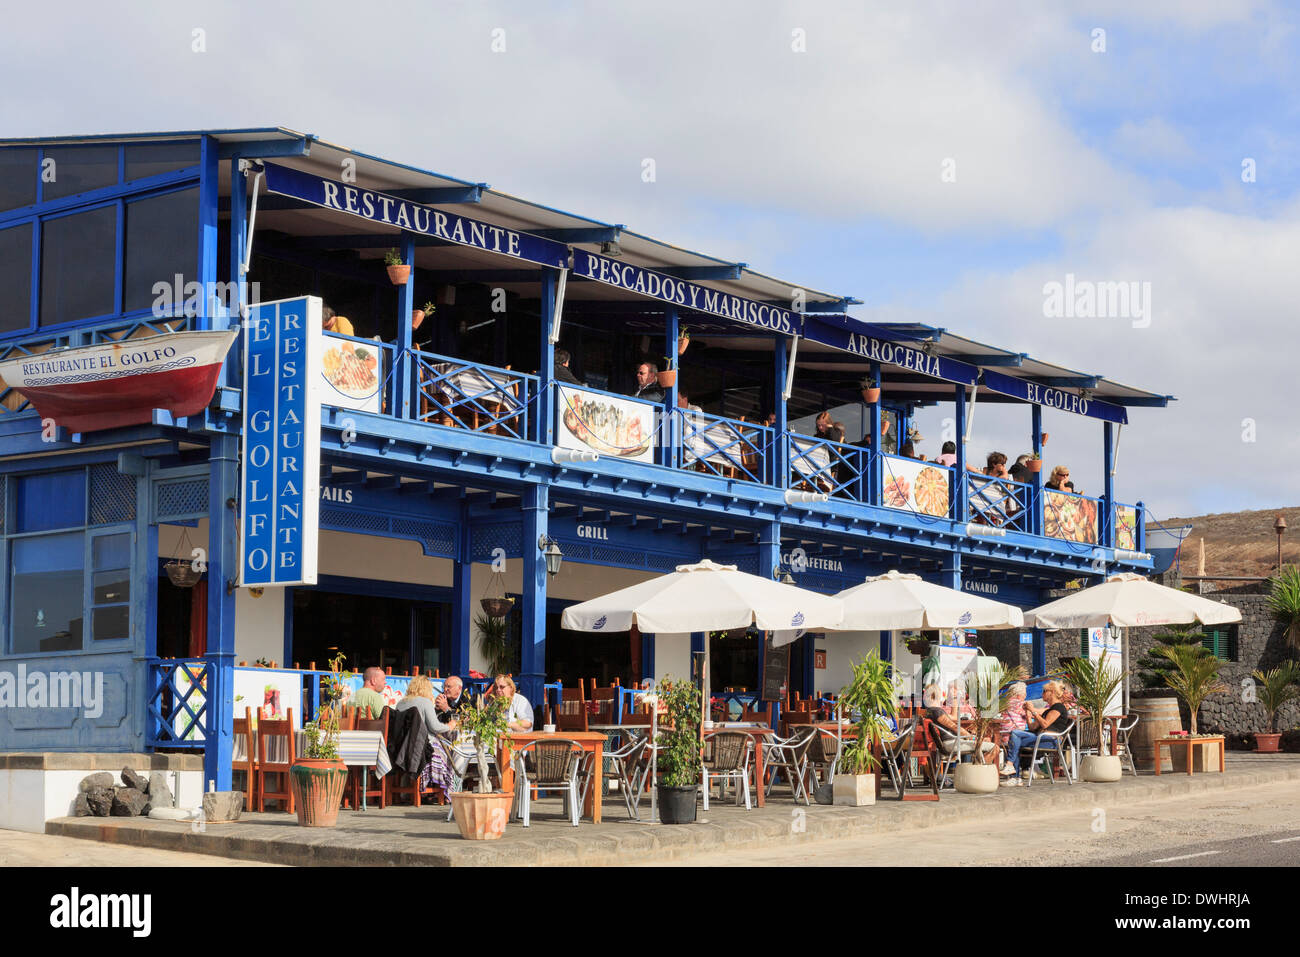 People dining outside a seafood restaurant in El Golfo, Lanzarote, Canary Islands, Spain, Europe. - Stock Image